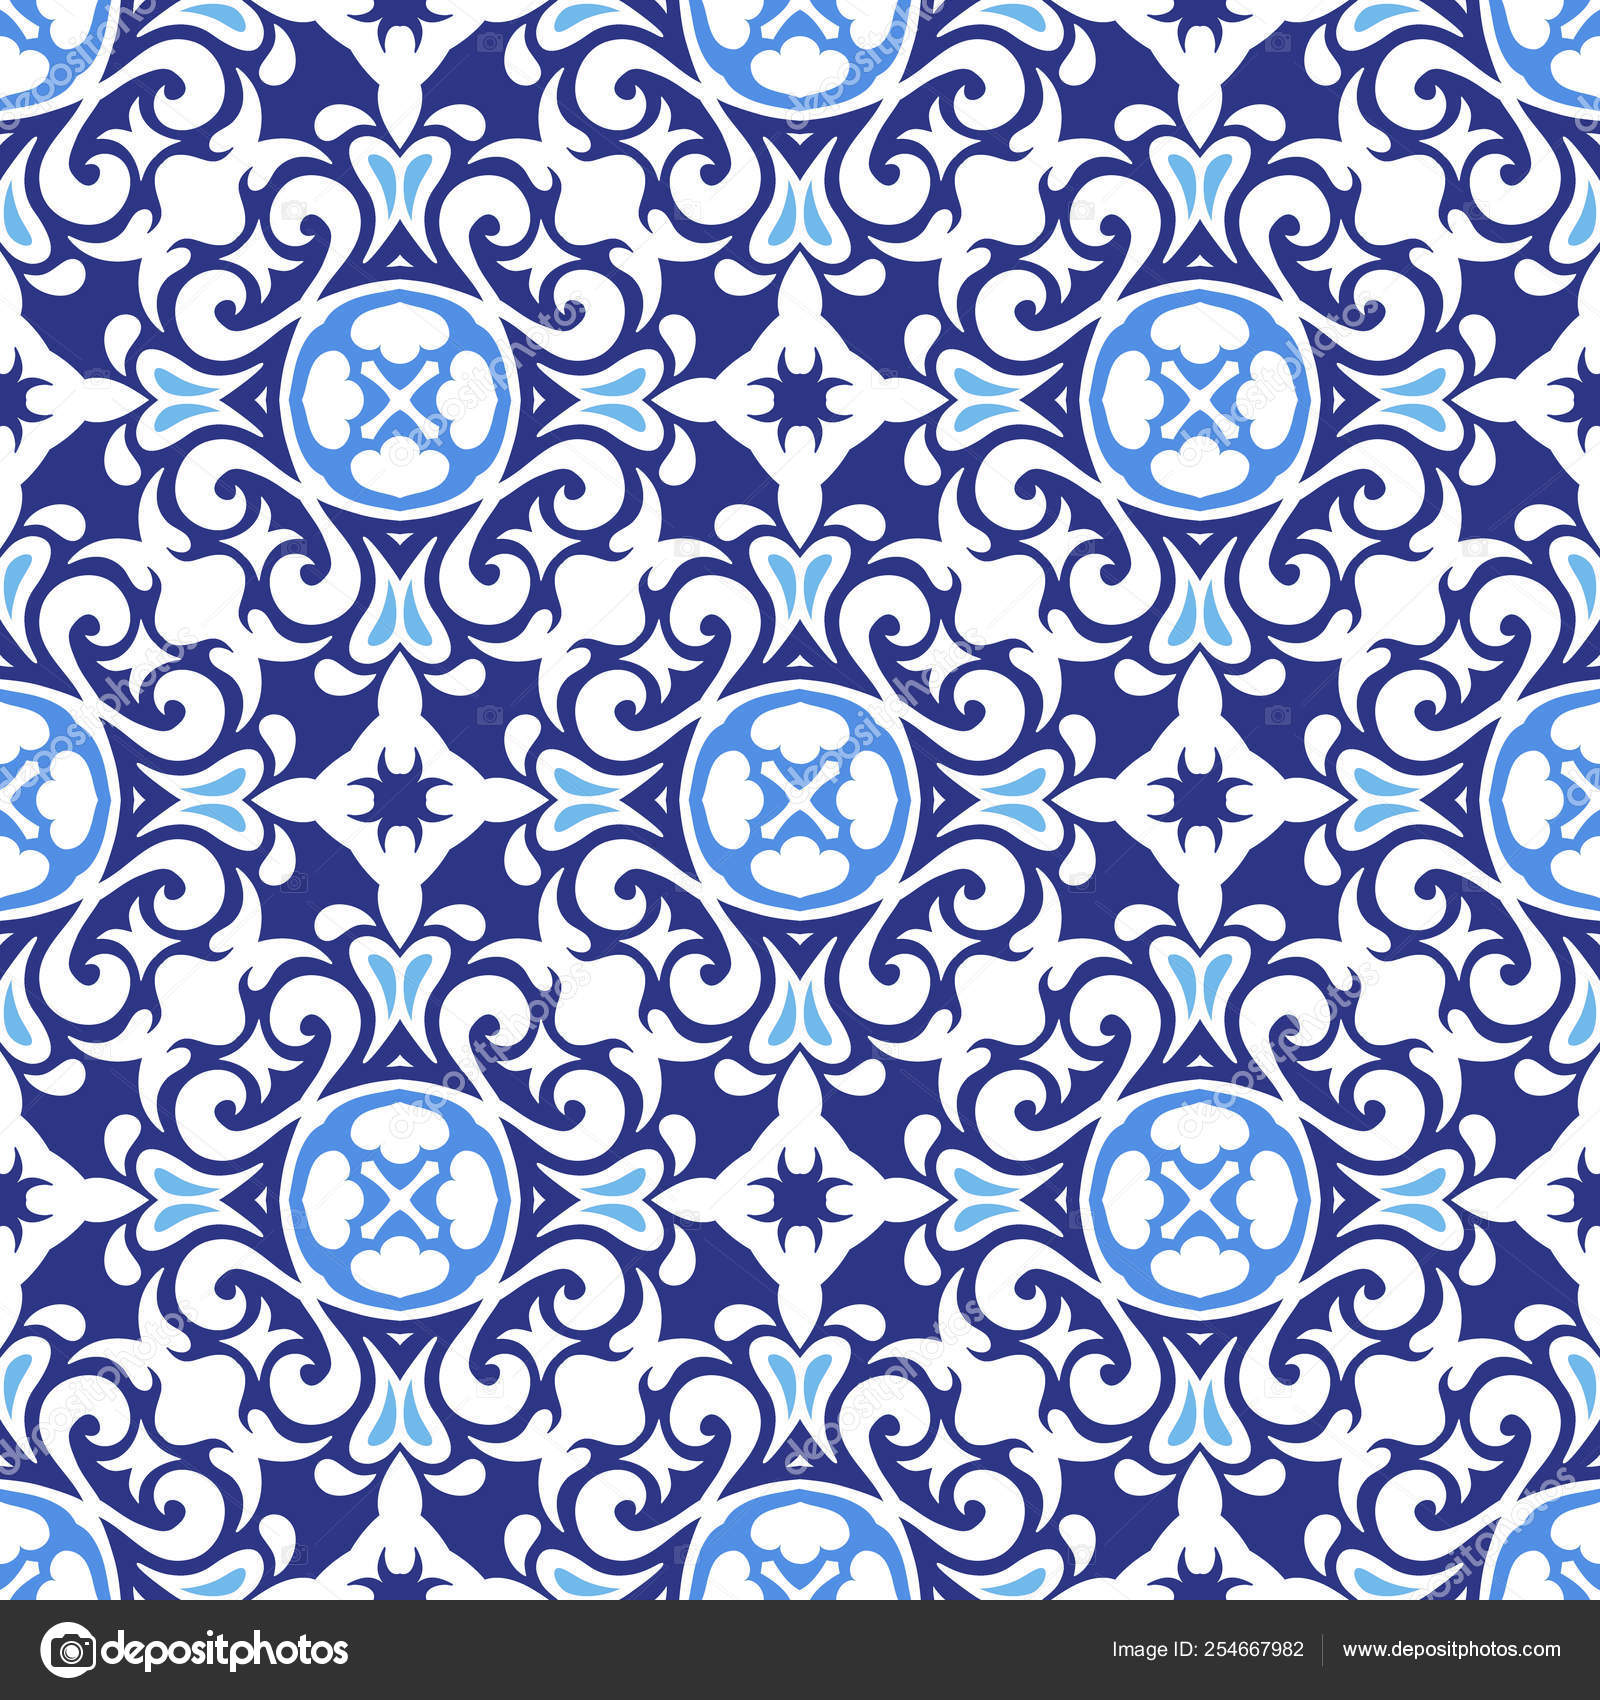 Damask Seamless Tiles Vector Surface Design In Blue Colors Chinese Porcelain Style Vector Image By C Astya Vector Stock 254667982